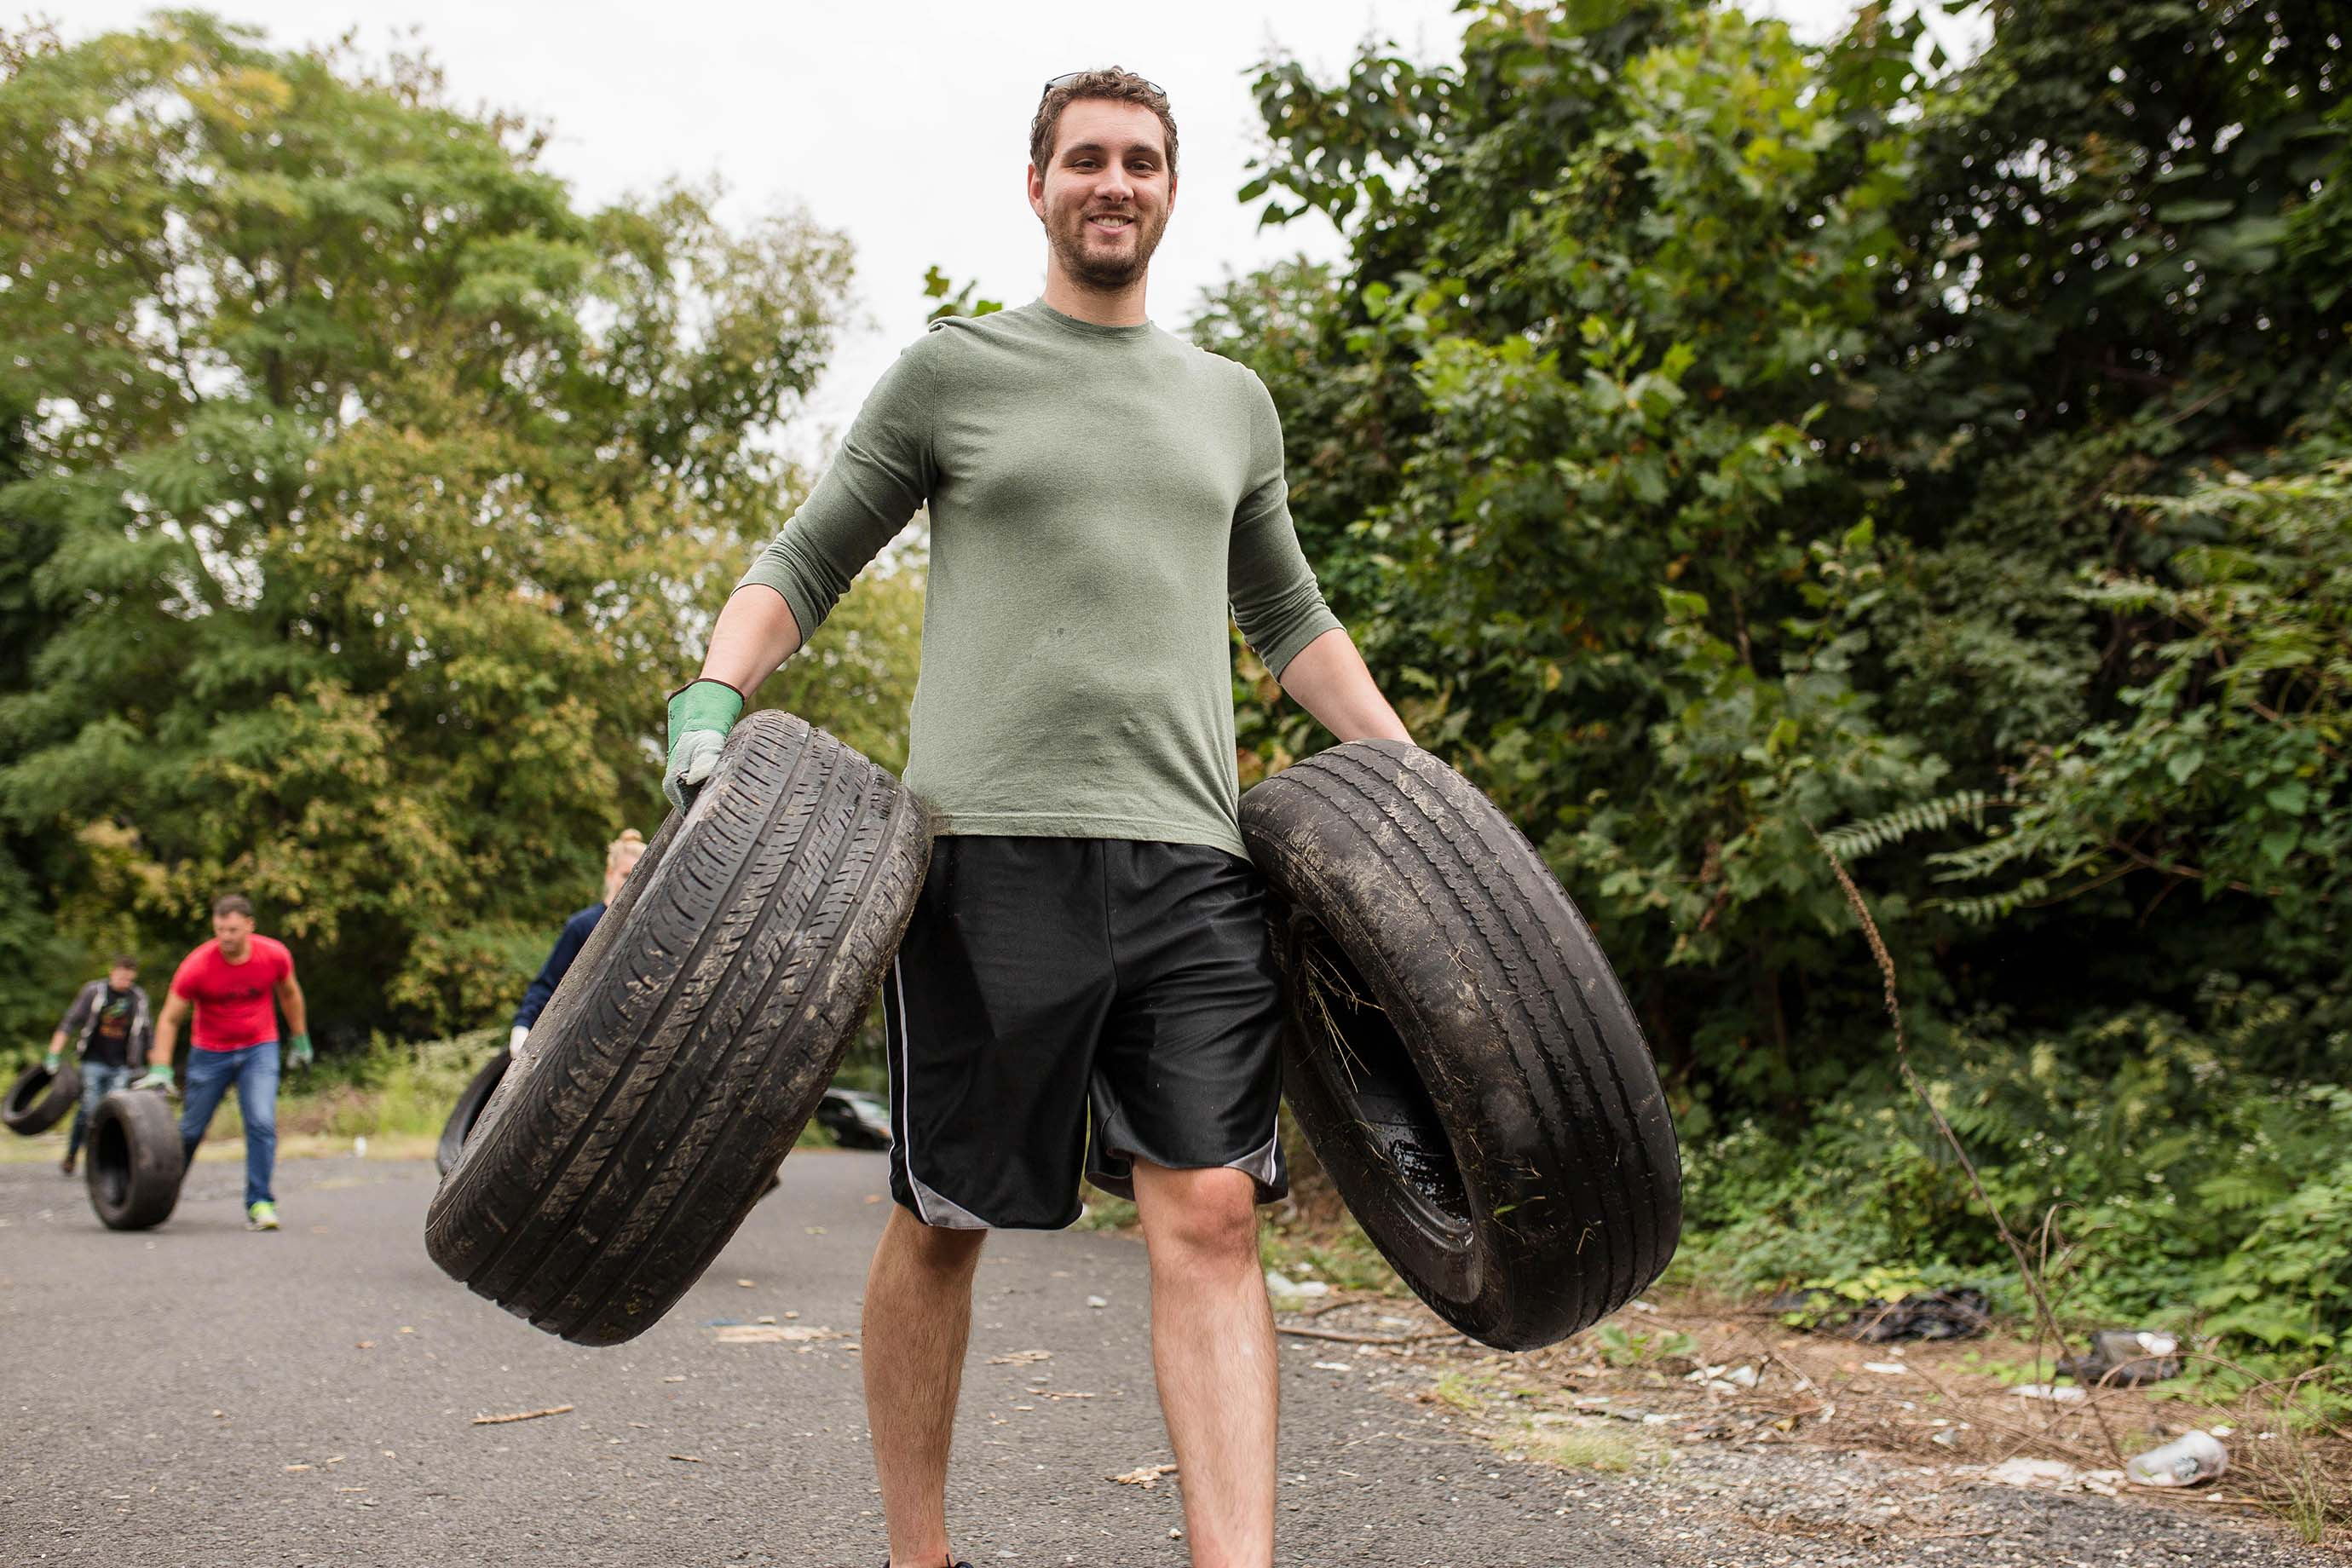 Tires are collected by volunteer at the Falls Road site in Fairmount Park.